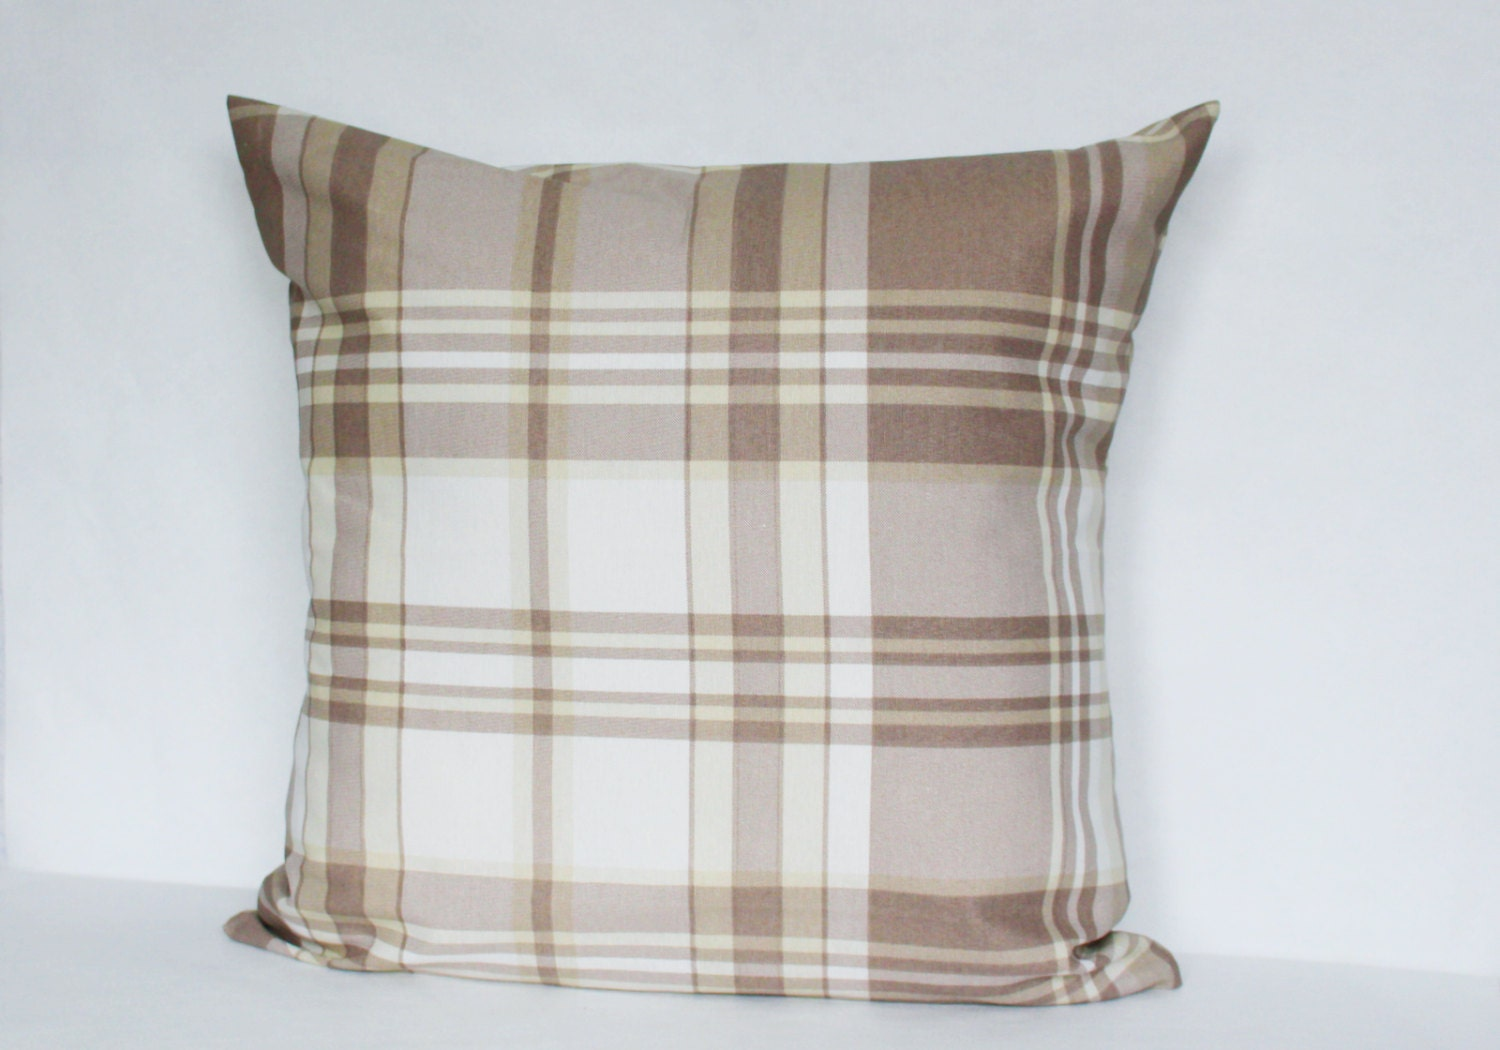 Plaid Pillow Cover Throw Pillow 16x16 inch Decorative